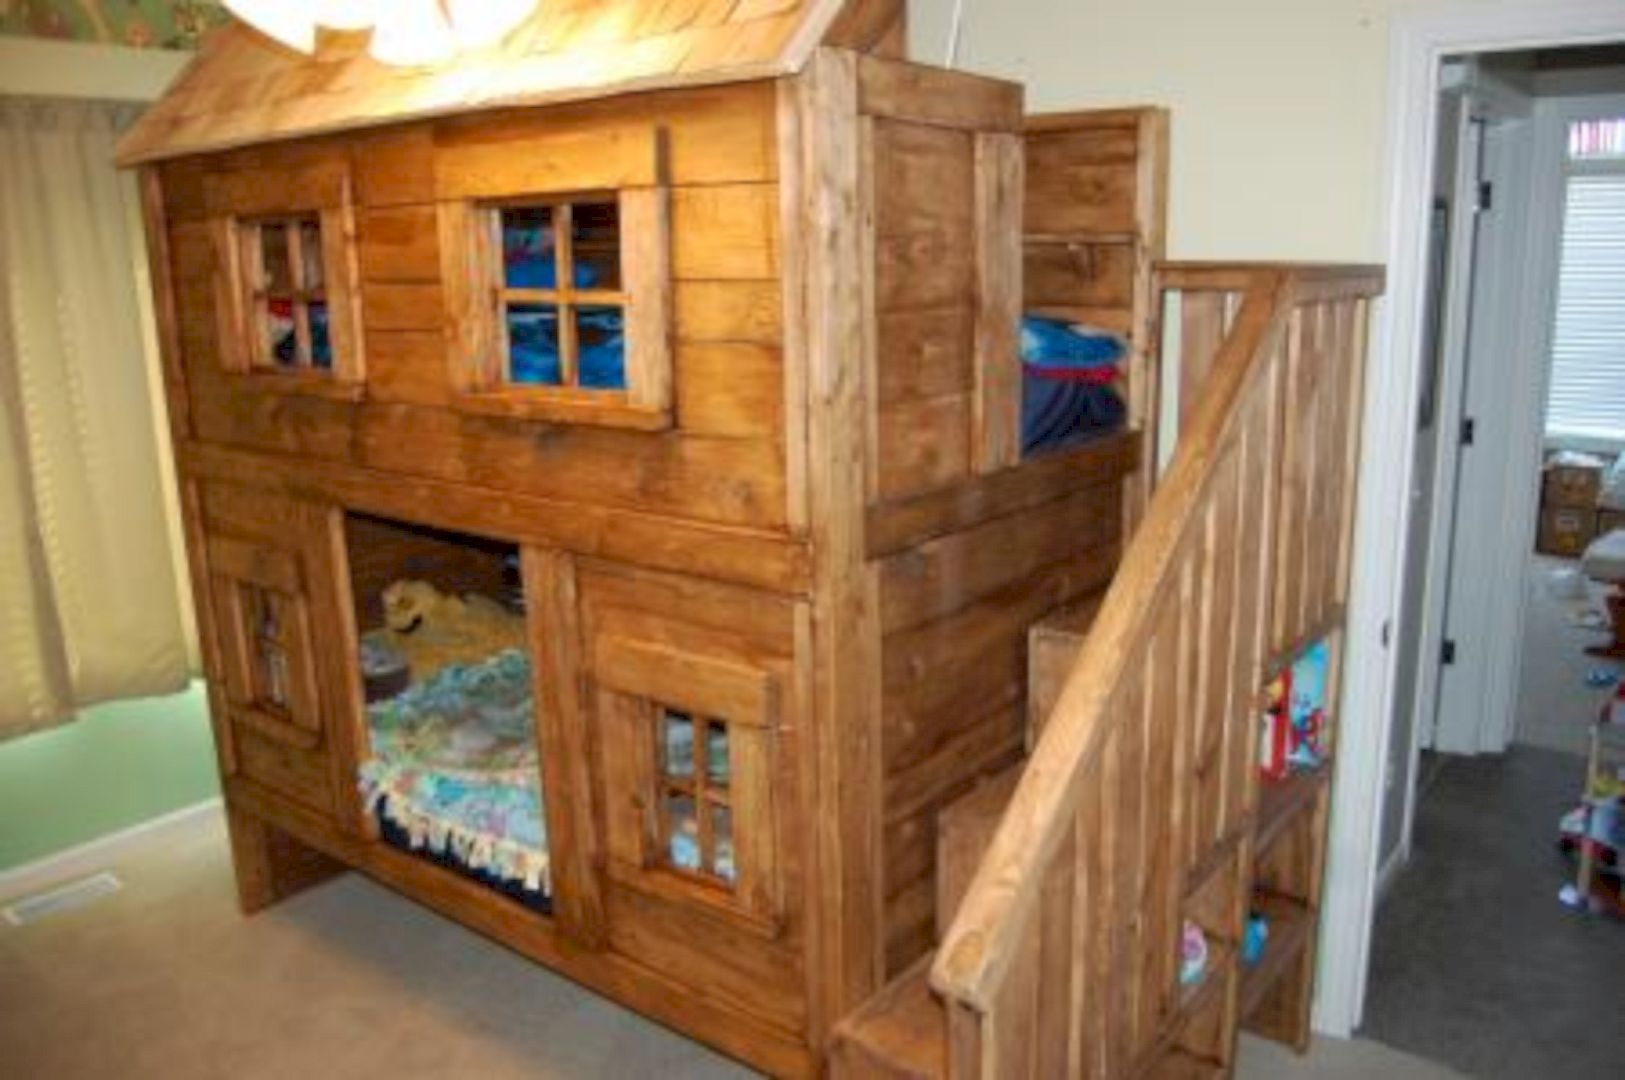 Loft bed ideas for boys   Awesome Kids Bunk Bed Designs  Bunk bed designs Bed design and